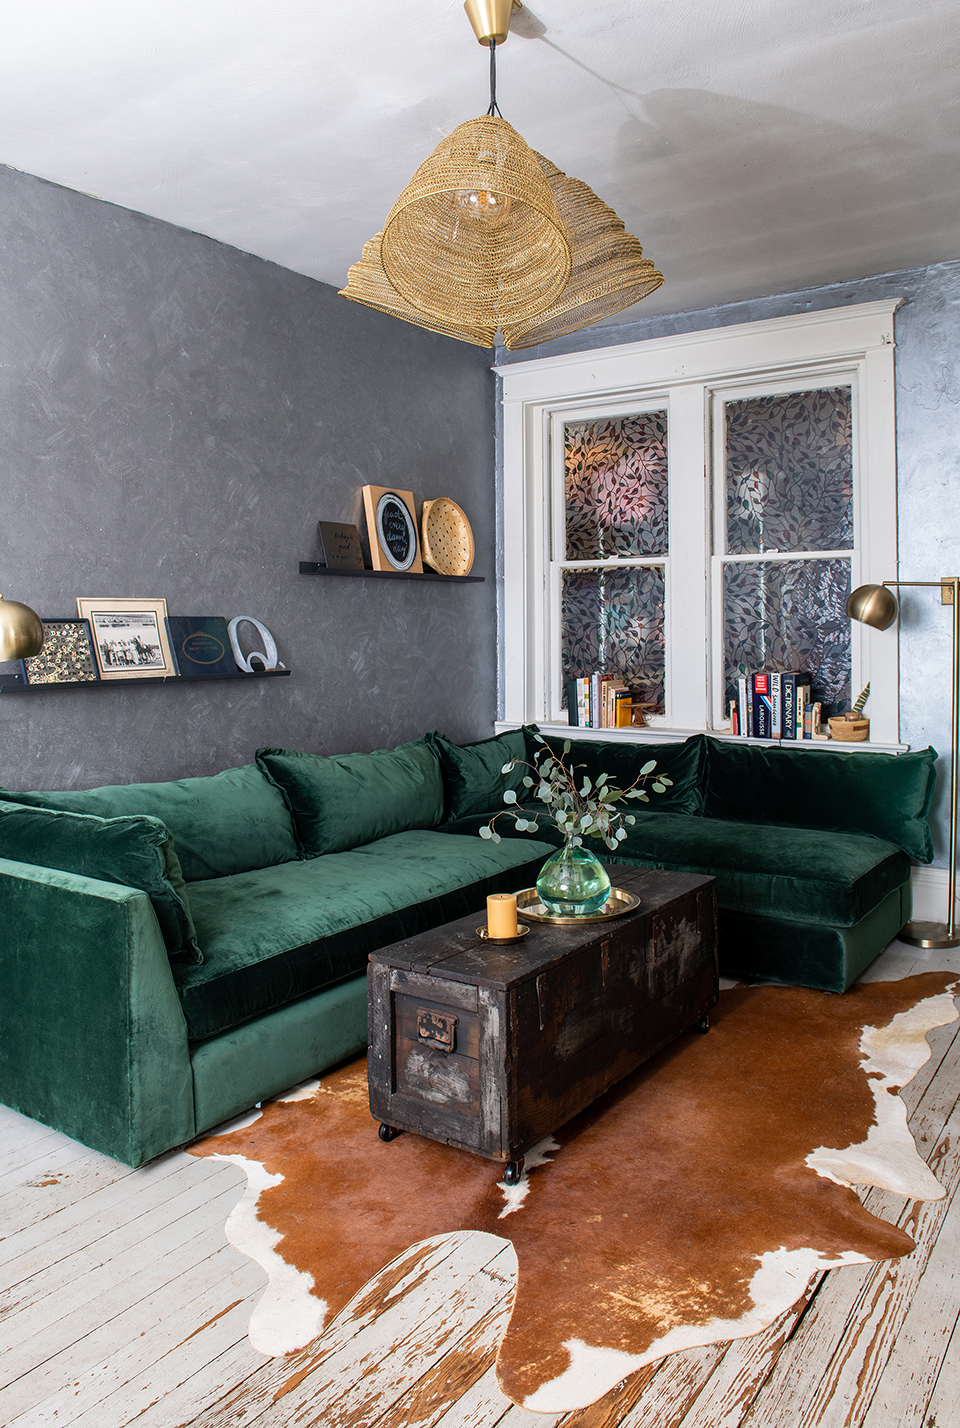 The Best New Living Room Trends That Will Dominate 20, According ...